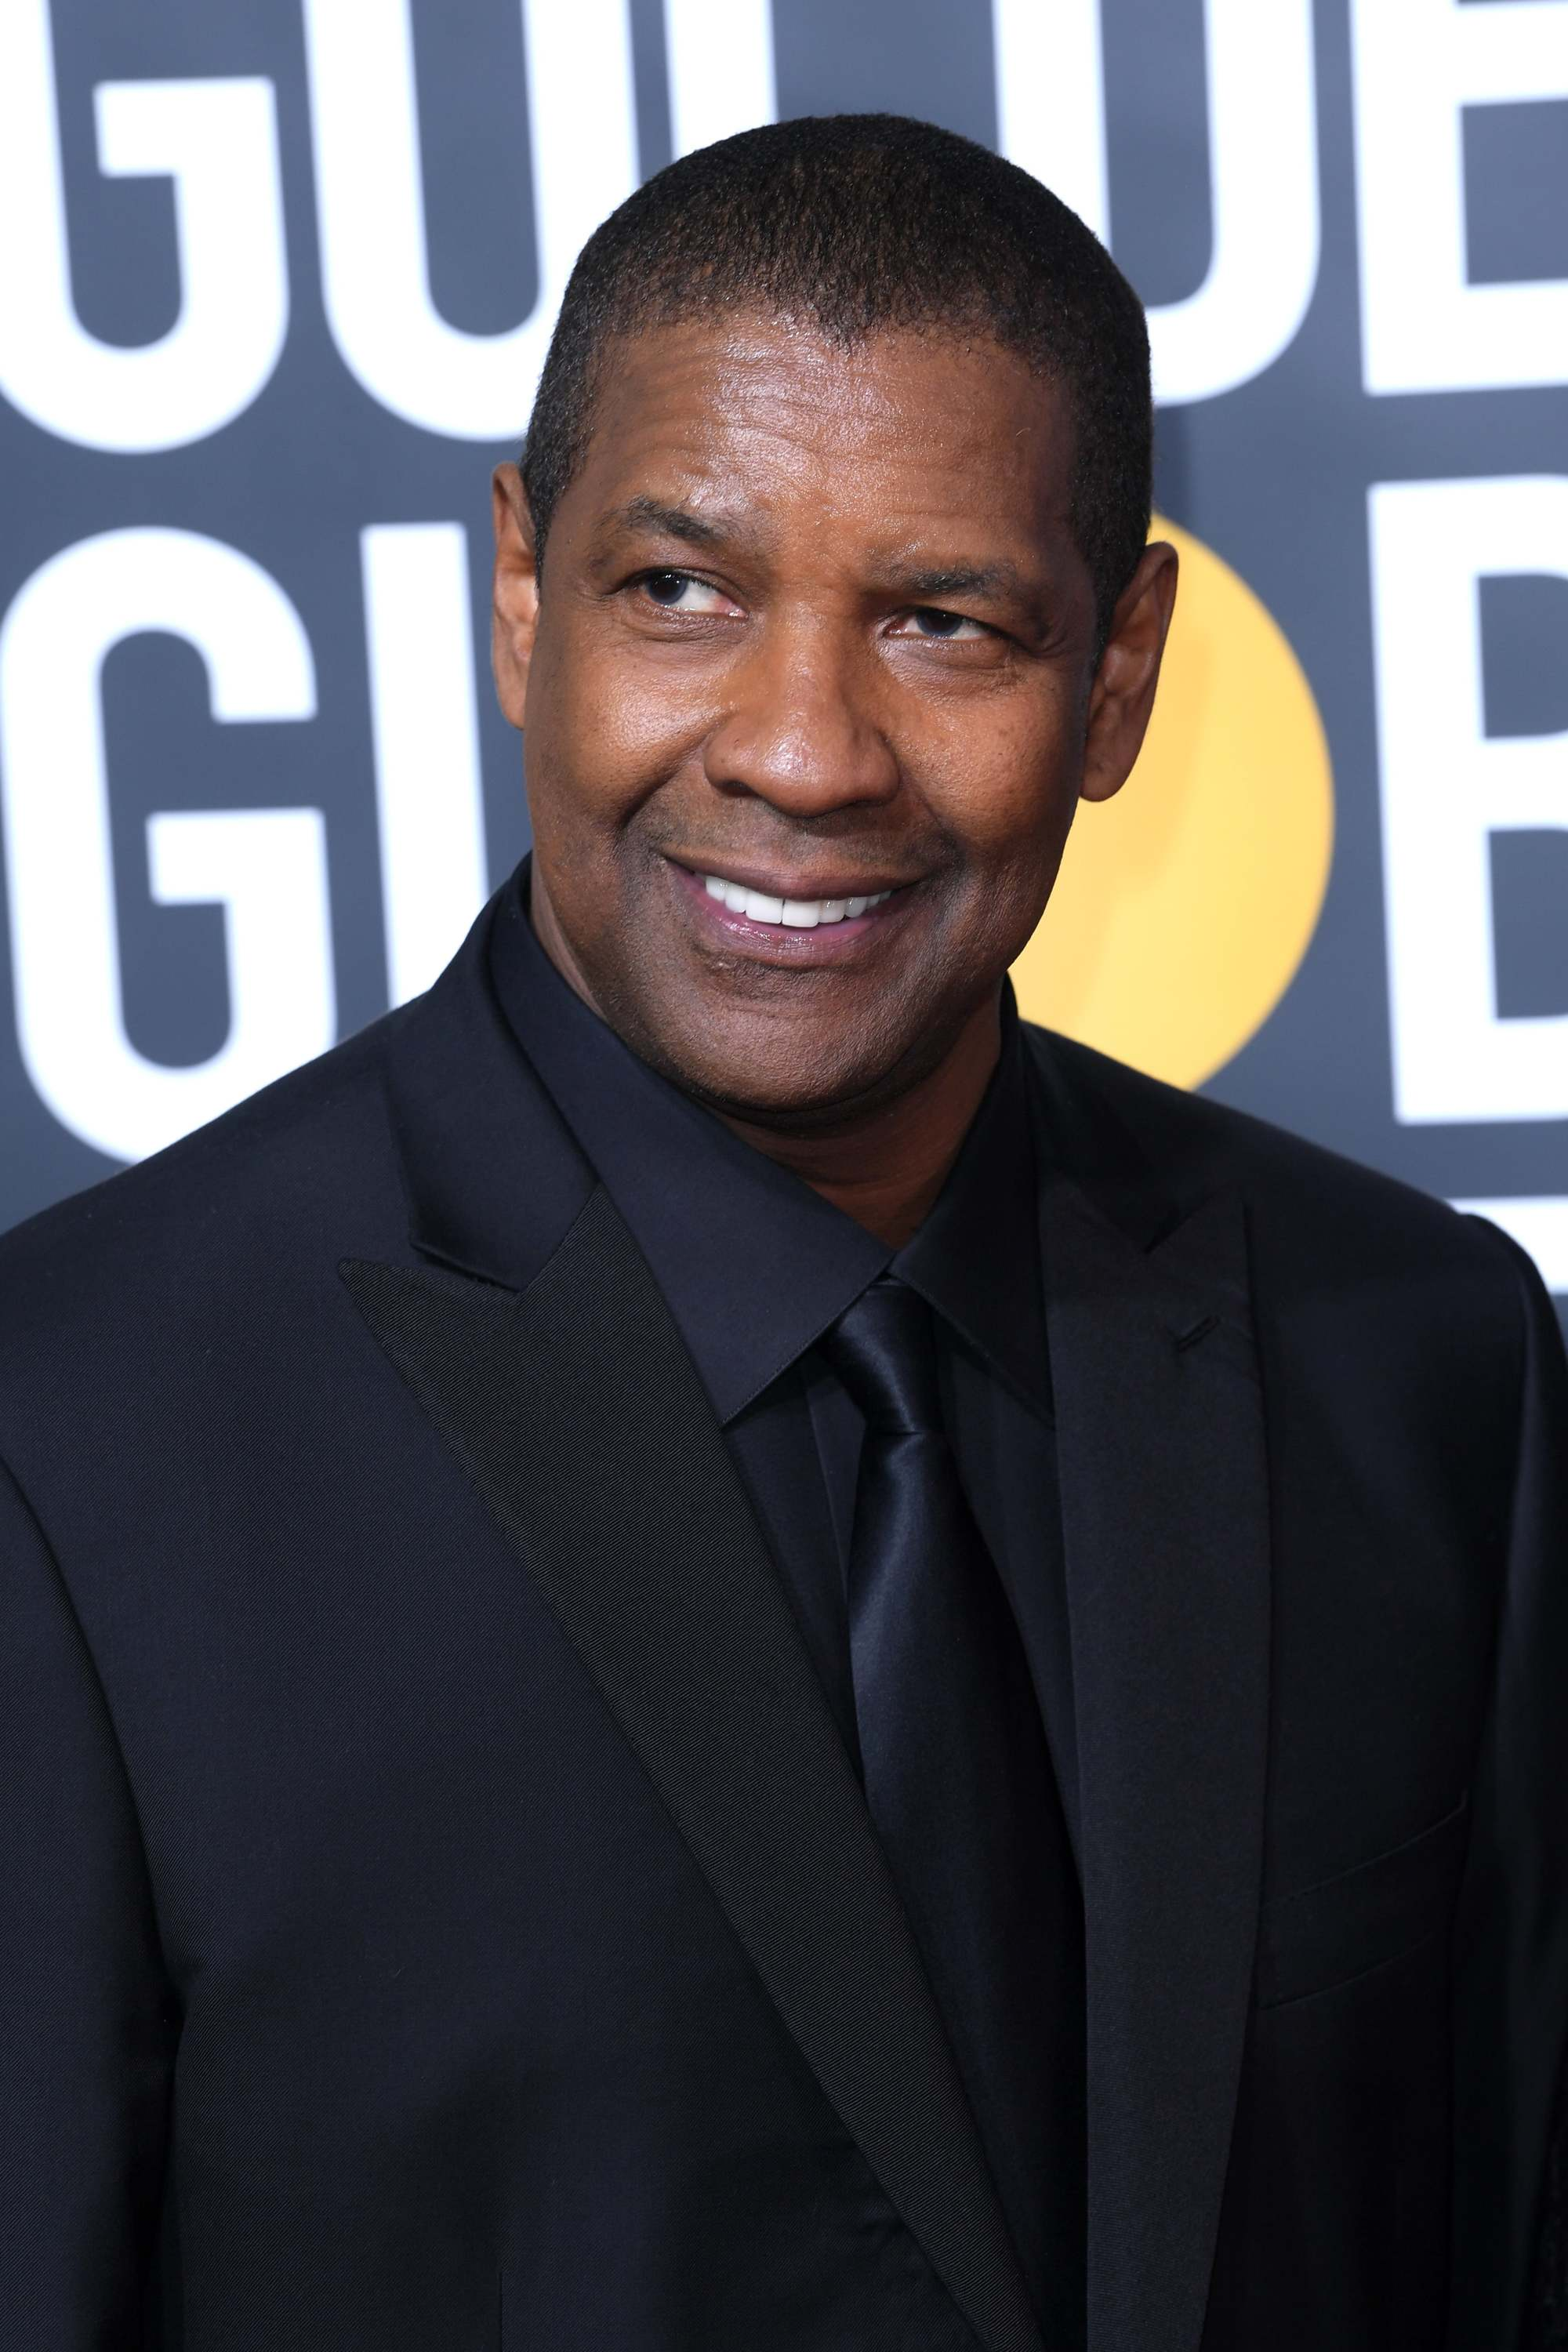 Hairstyles for men over 50: Denzel Washington with short shaved hair wearing a black suit at Golden Globes event.